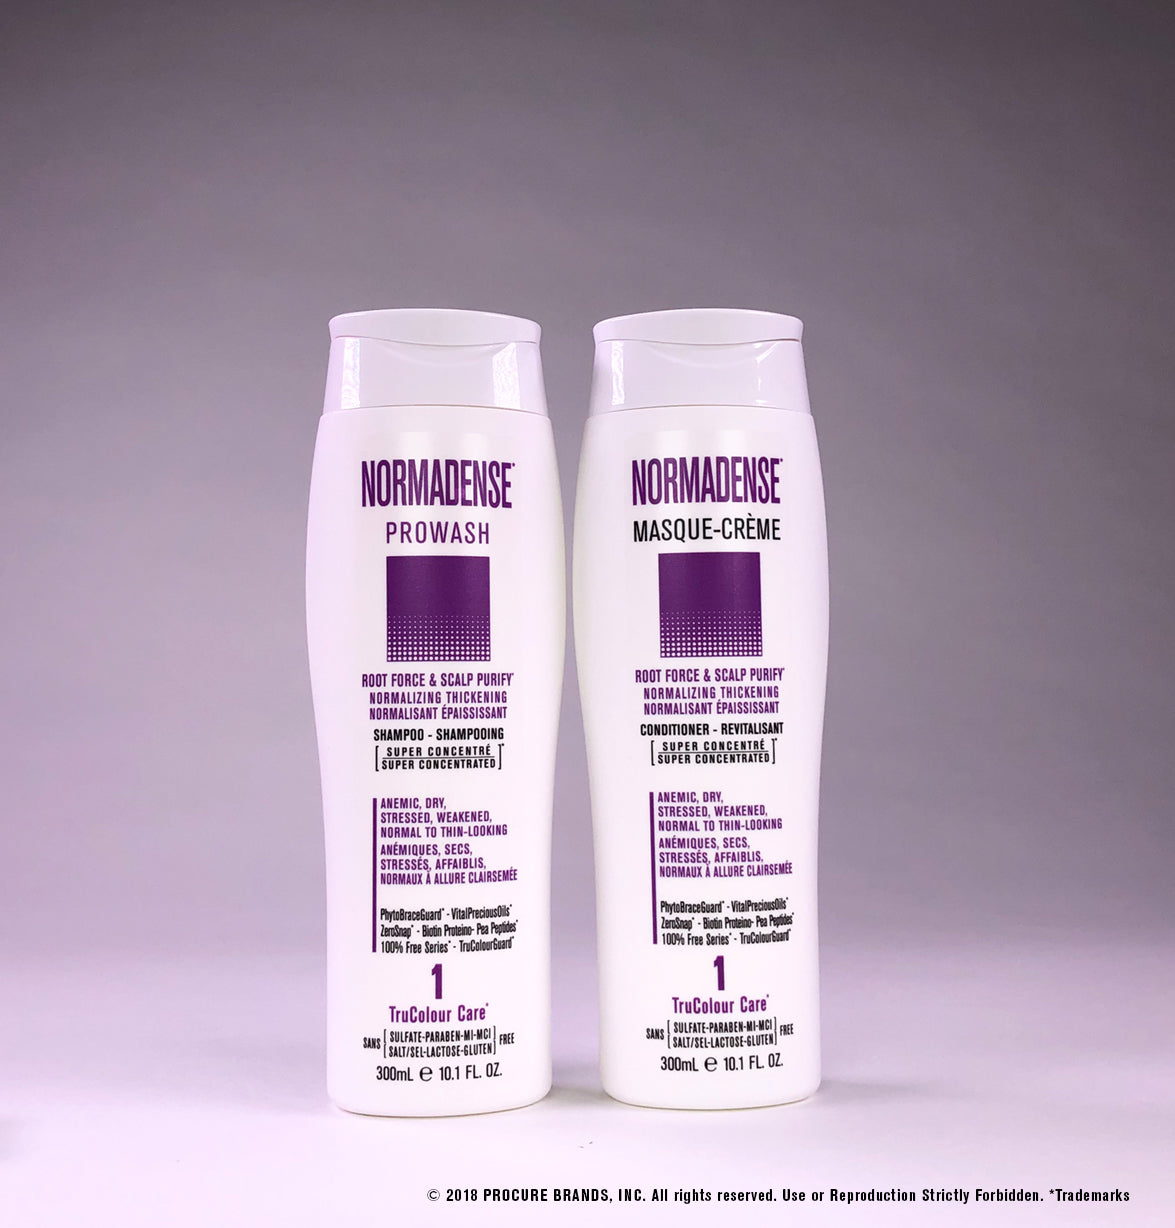 DUO NORMADENSE 1 - Prowash + Masque-Creme 300 mL